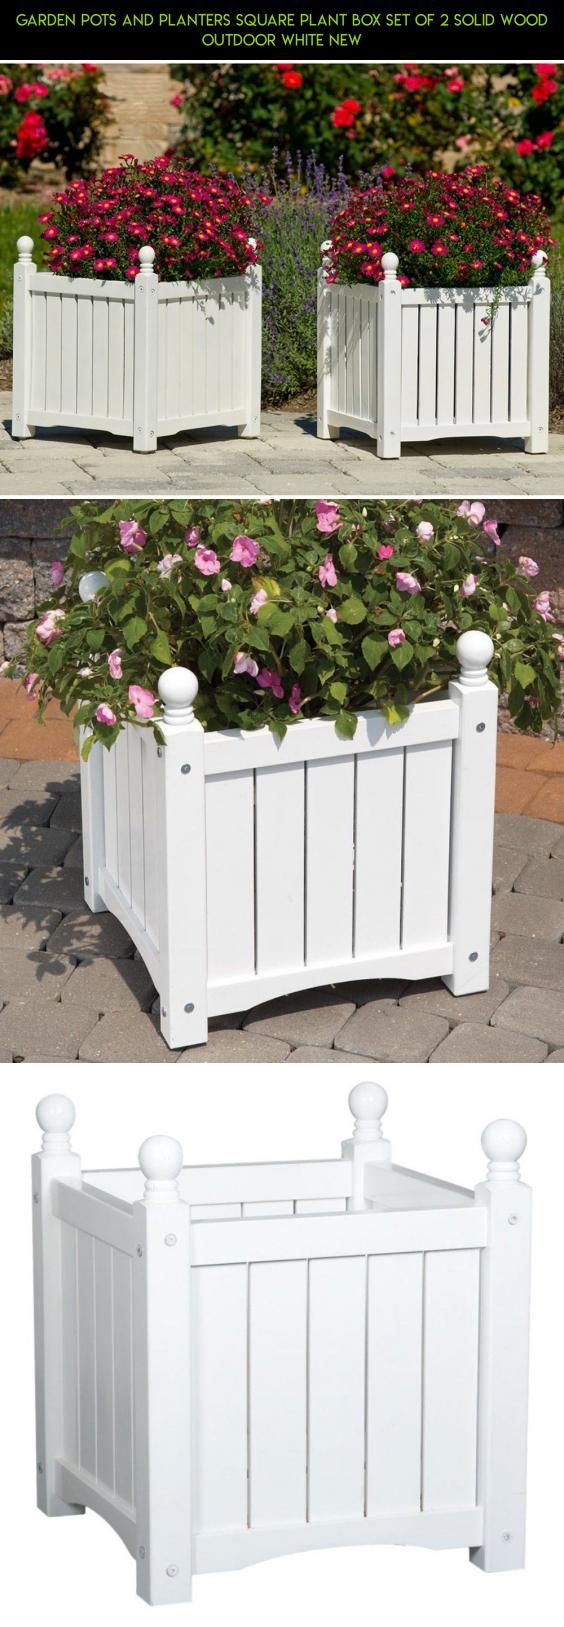 front potted containers ideas on planters and best planting idea fall garden porch whiskey pinterest planter images container melvwilliams barrel color pots flower